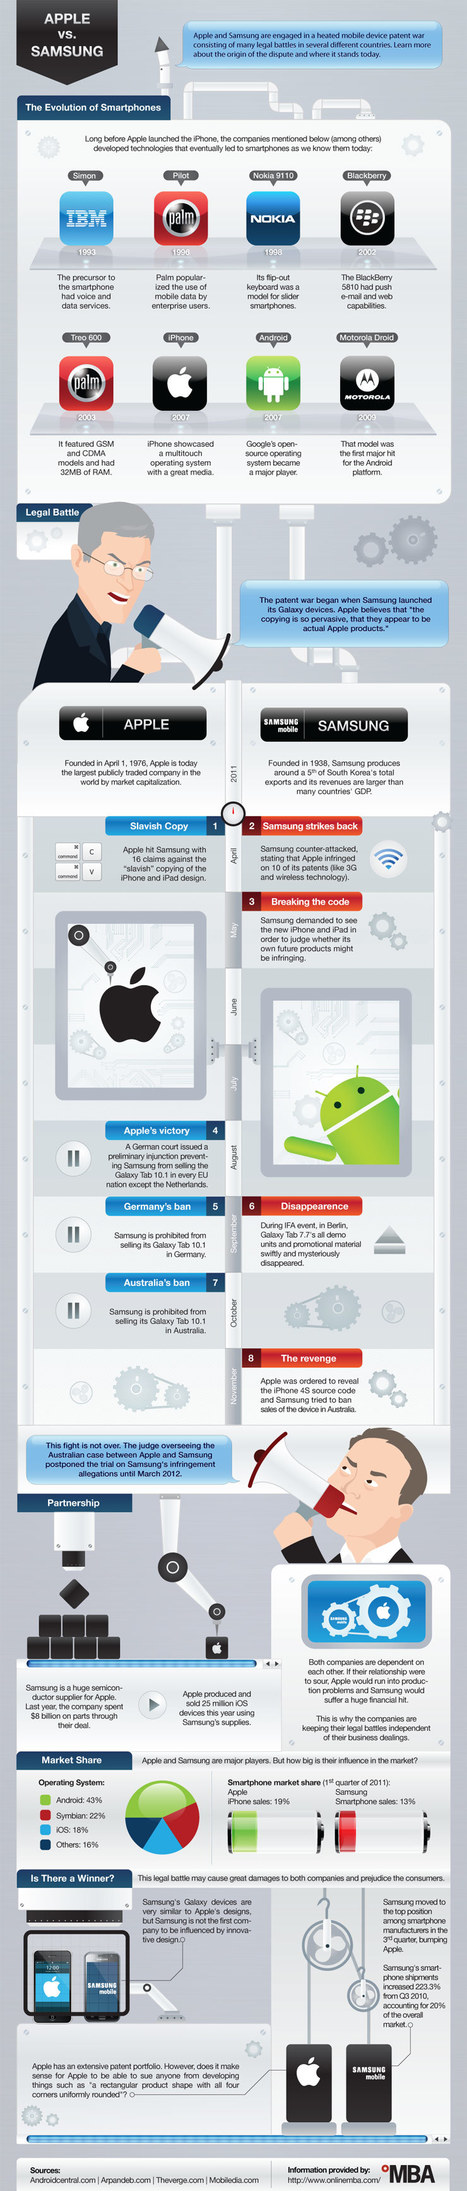 Apple vs. Samsung: The Patent Wars, Explained – two infographics /@BerriePelser | Media | Scoop.it